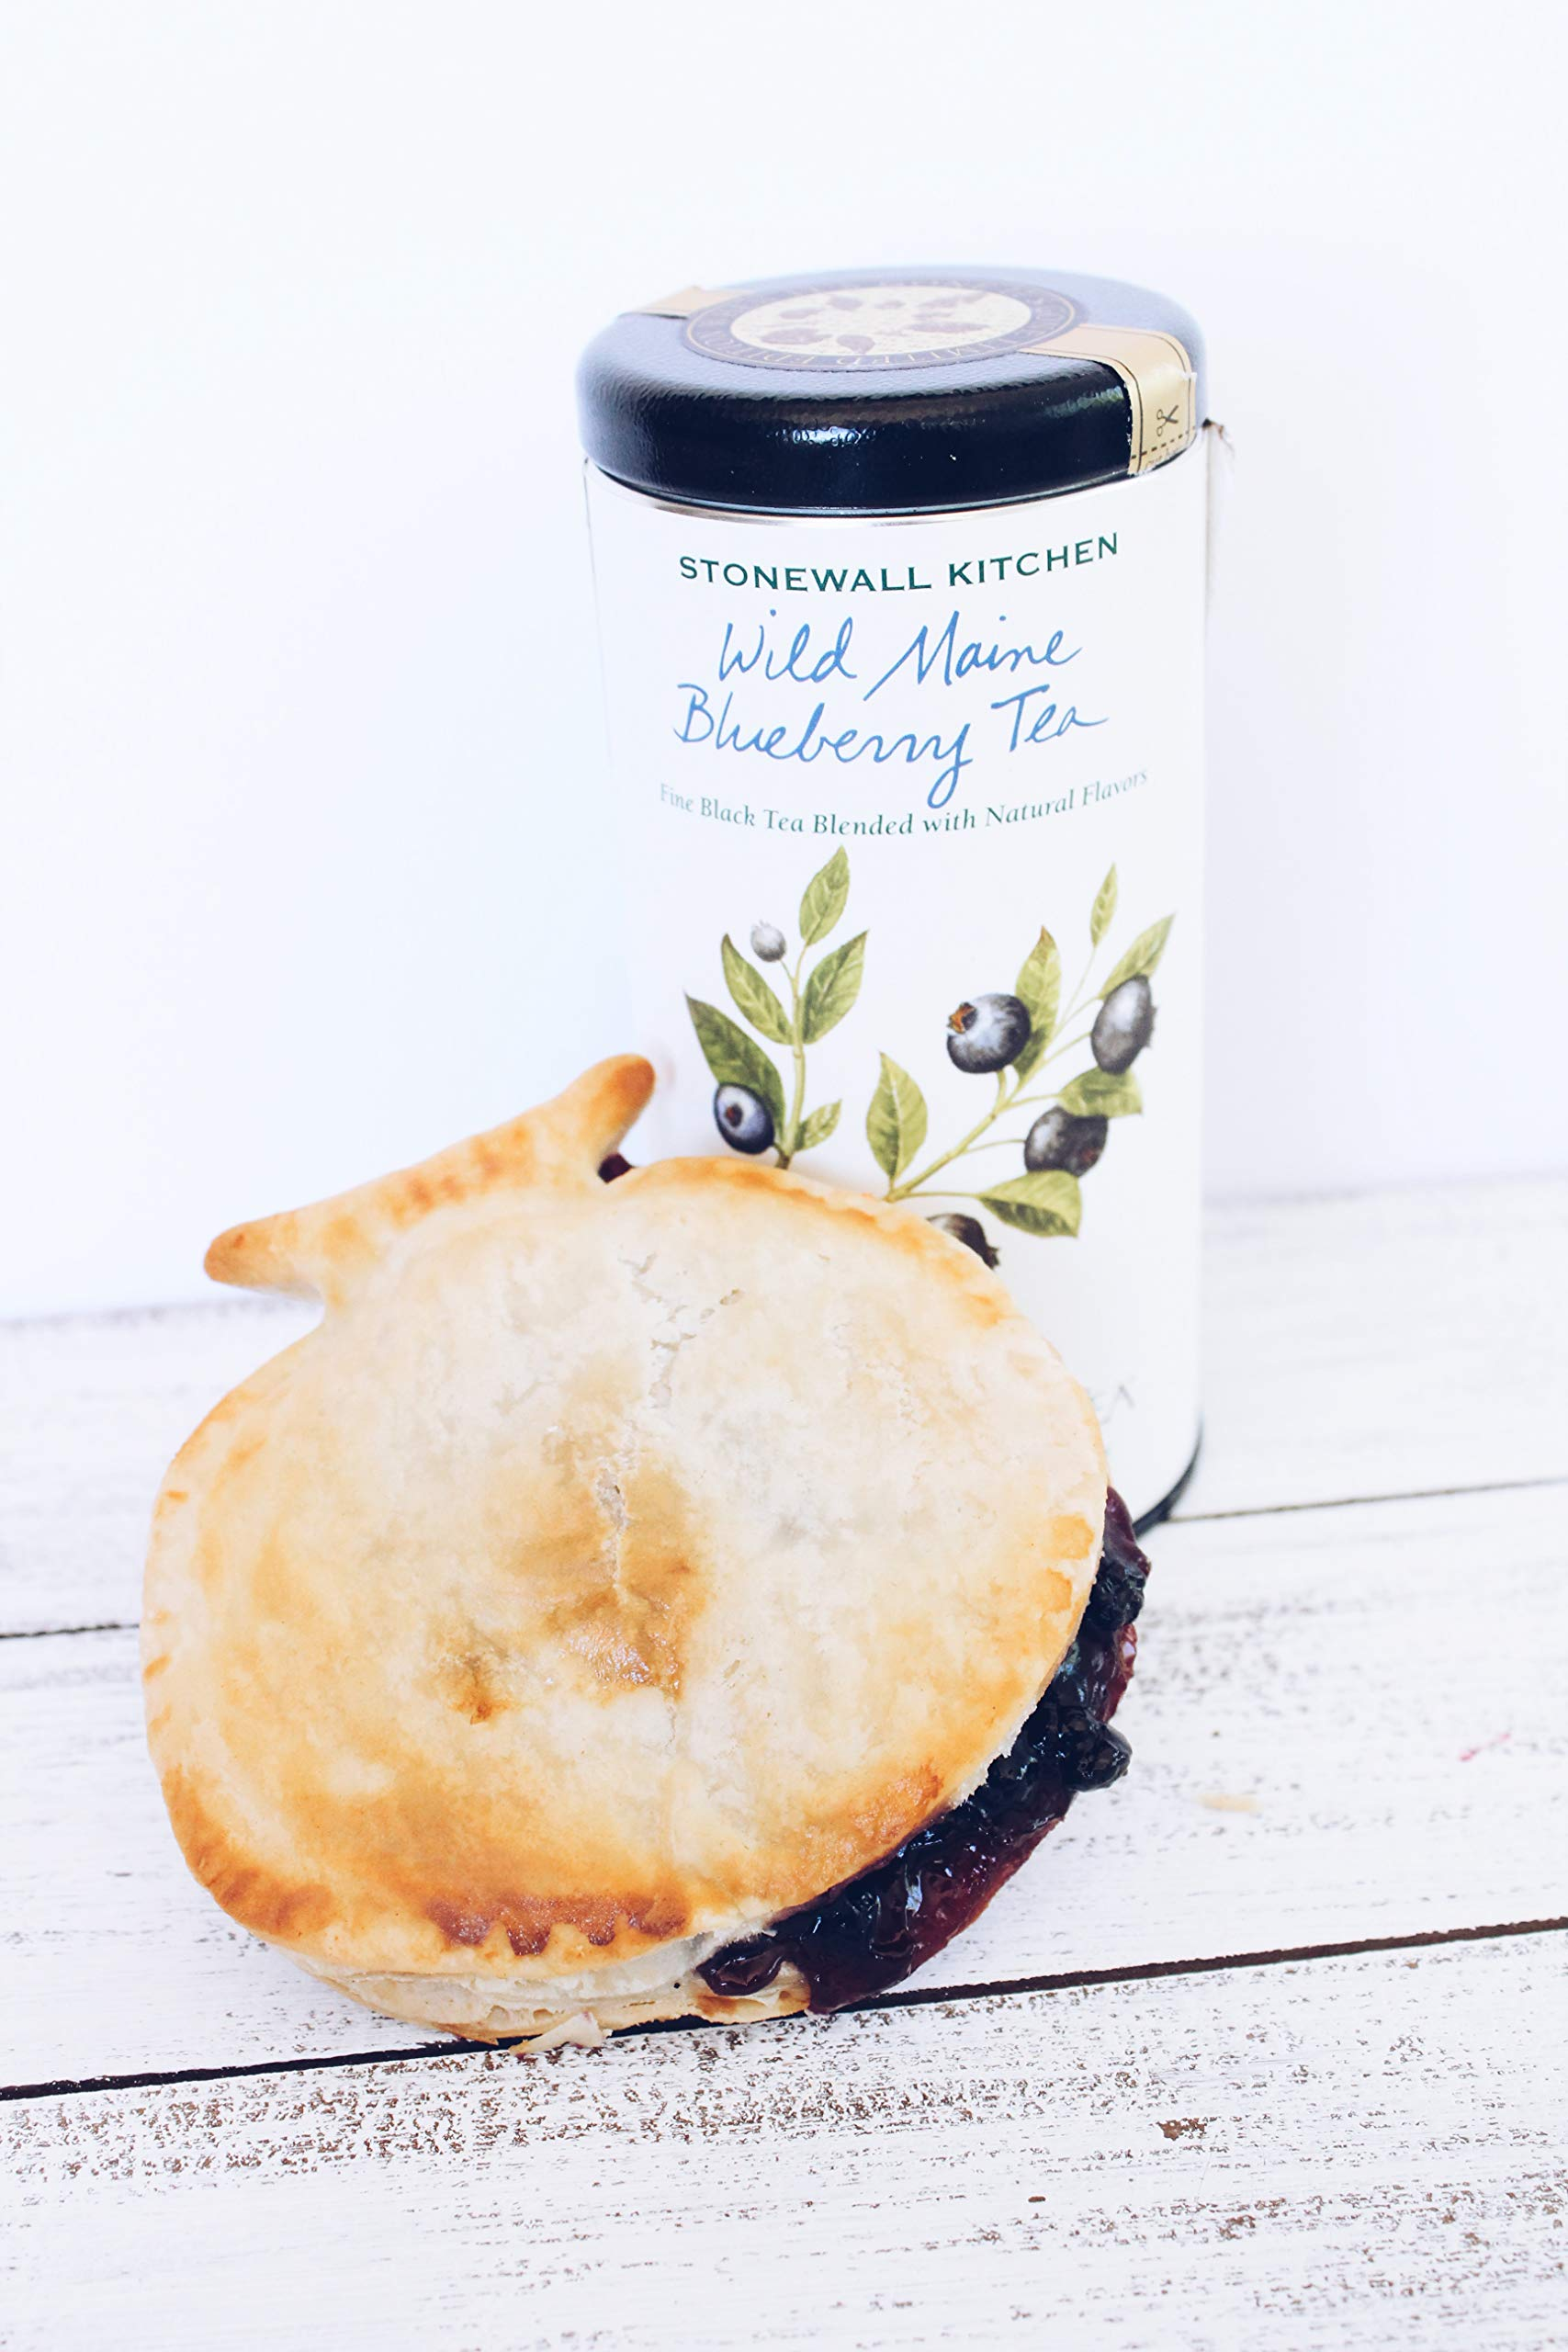 Mamie's 12 Pack Melt-in-Your-Mouth Single Serving Blueberry Pies, Individually Packaged 4.5oz Pocket Pies, Preservative Free, Shipped Frozen and Ready to Bake, Made in USA. by Mamie's Pies (Image #7)